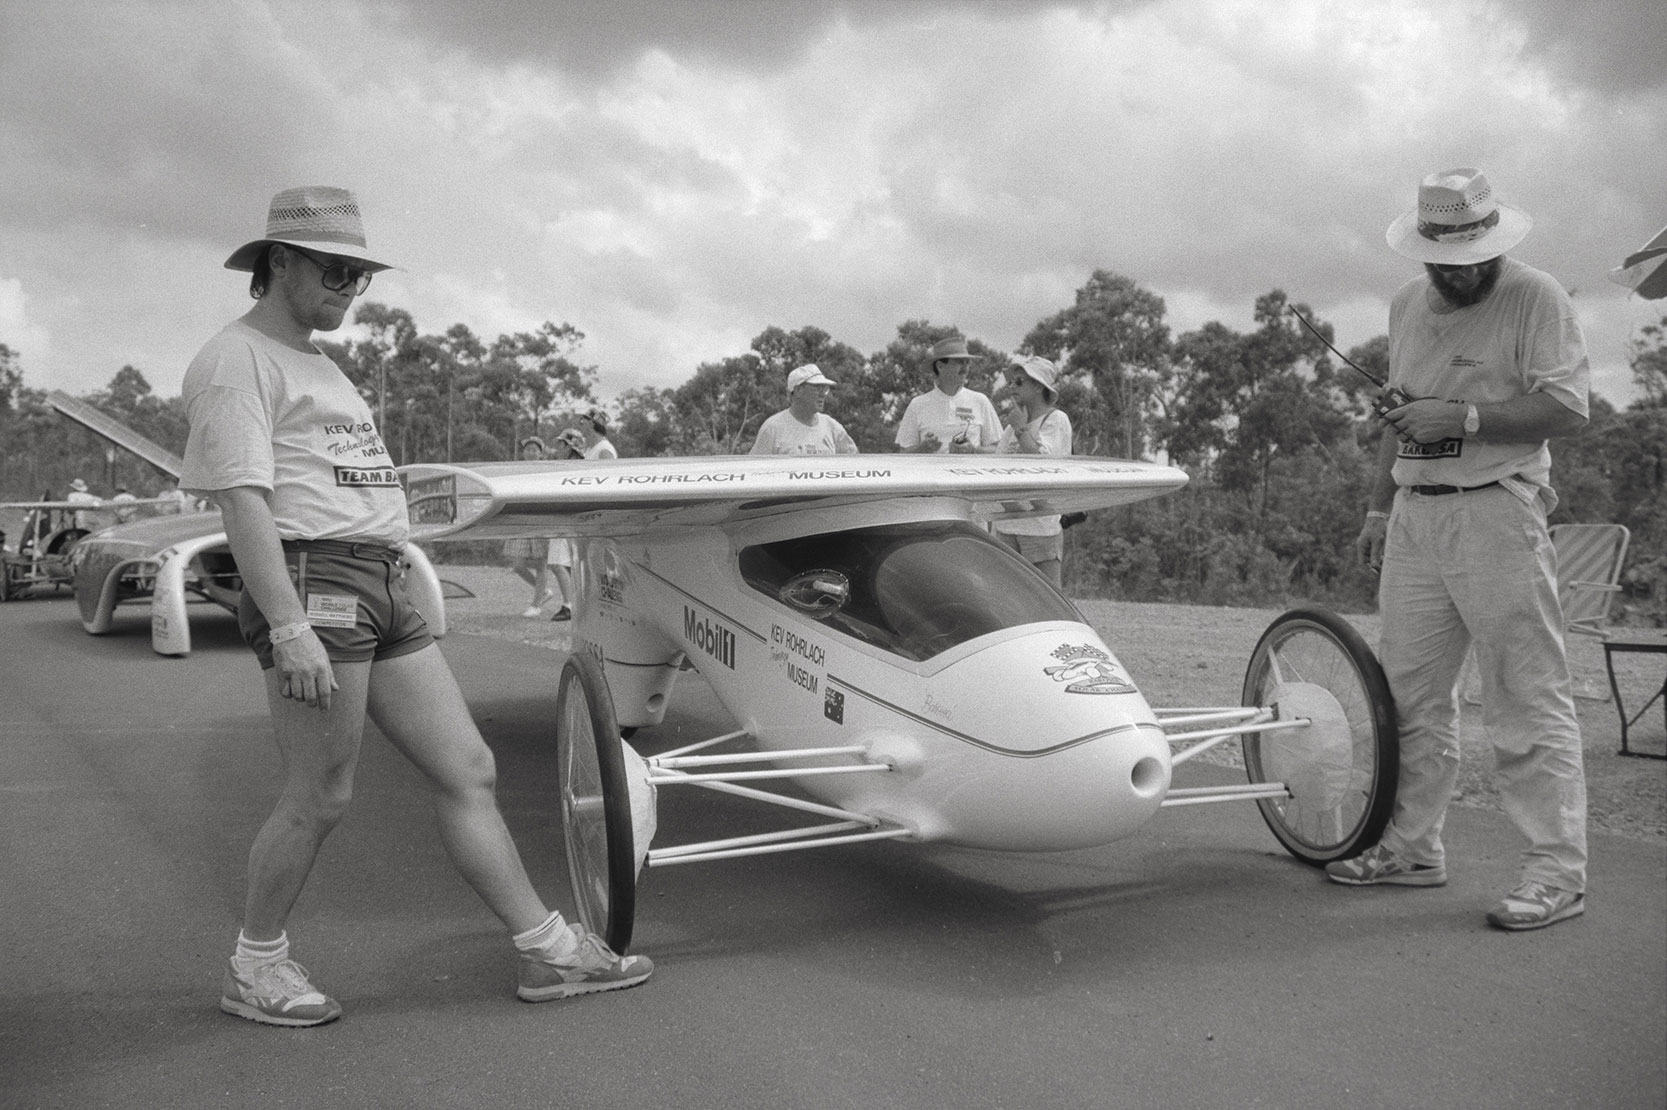 Solar cars road test for Darwin to Adelaide race, 10 December 1990<br />Image courtesy of Library & Archives NT,  Department of the Chief Minister, NTRS 3823 P1, Box 11, BW2947, Image 2